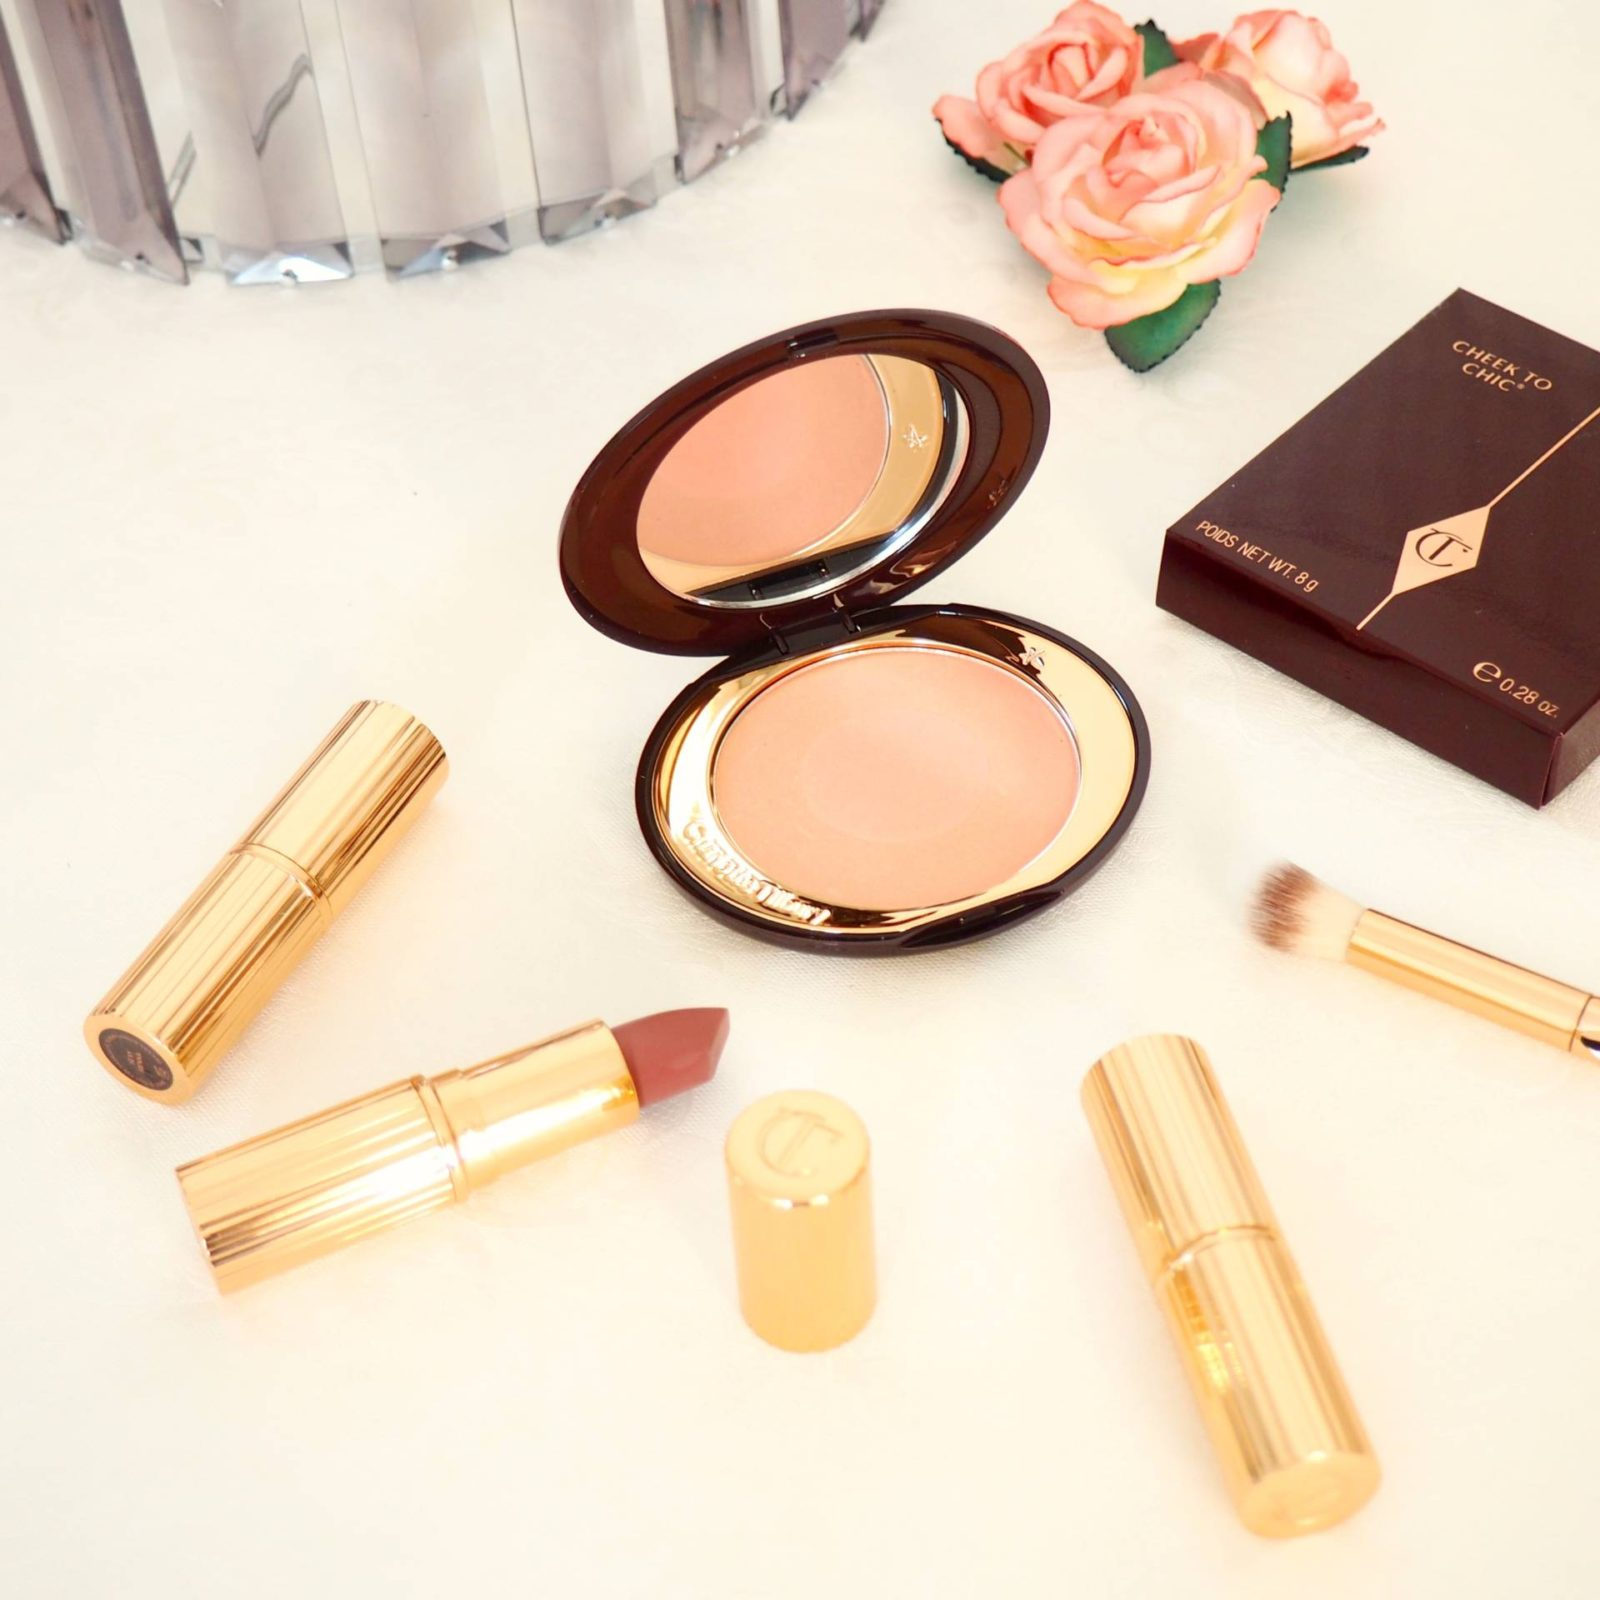 Charlotte Tilbury Cheek to Chic Review